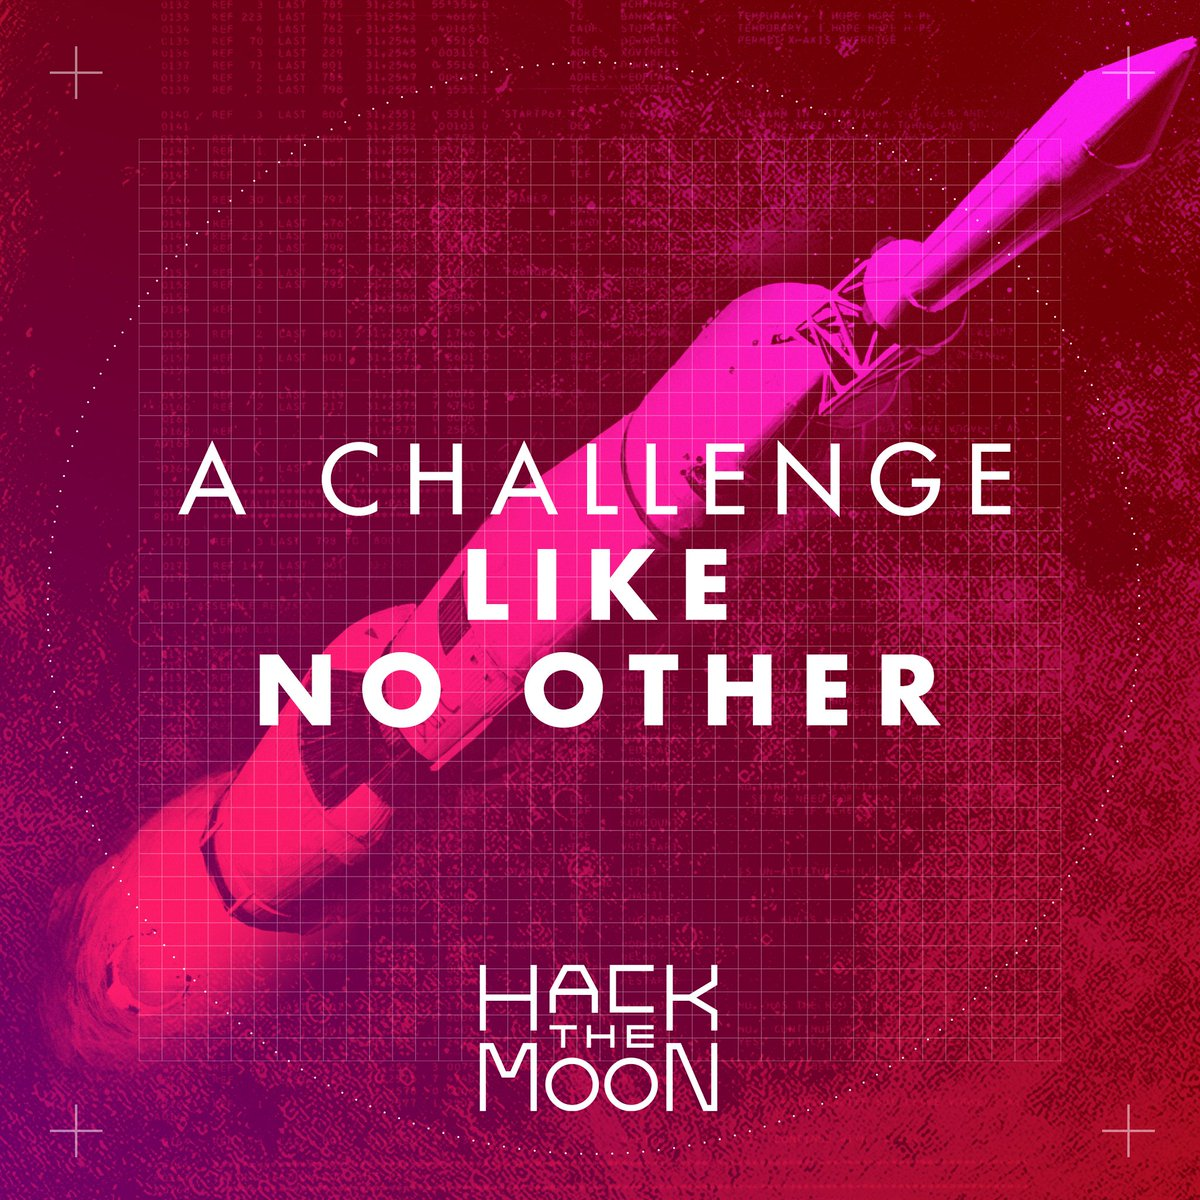 It was like building the first ship to cross the Atlantic without ever touching the ocean. #hackthemoon bit.ly/2HWUsEg